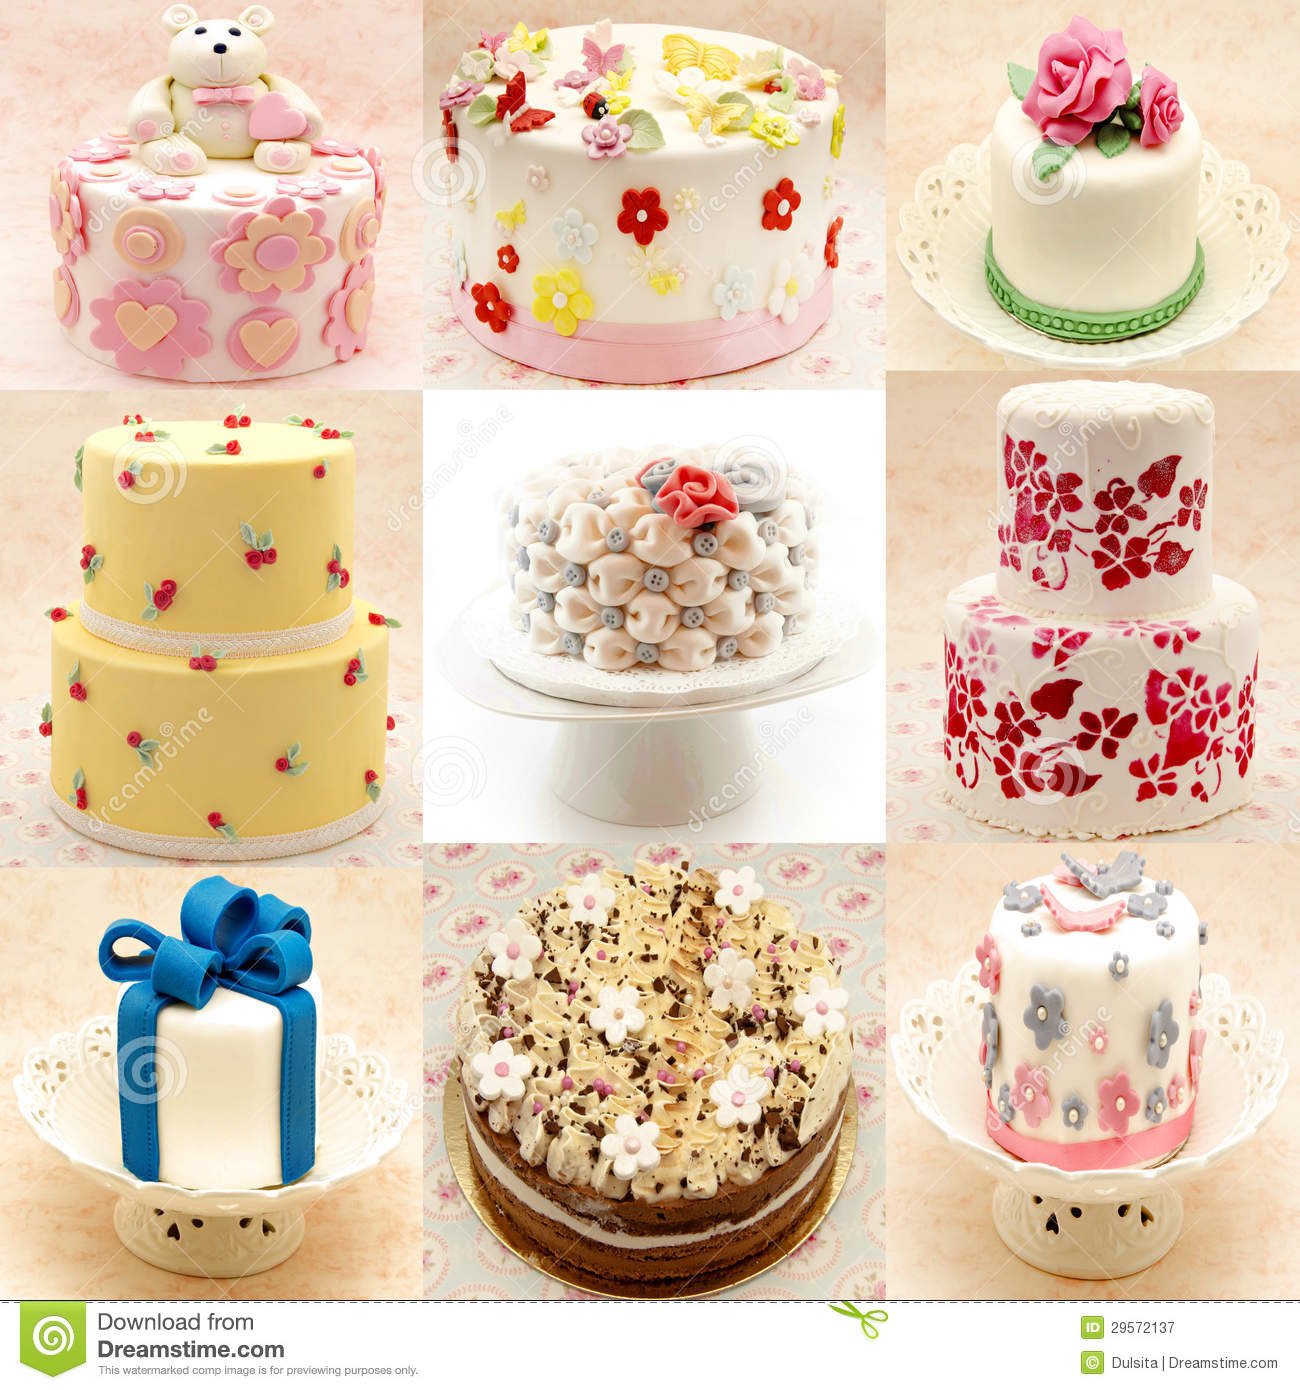 Mural Of Various Cakes Royalty Free Stock Photography